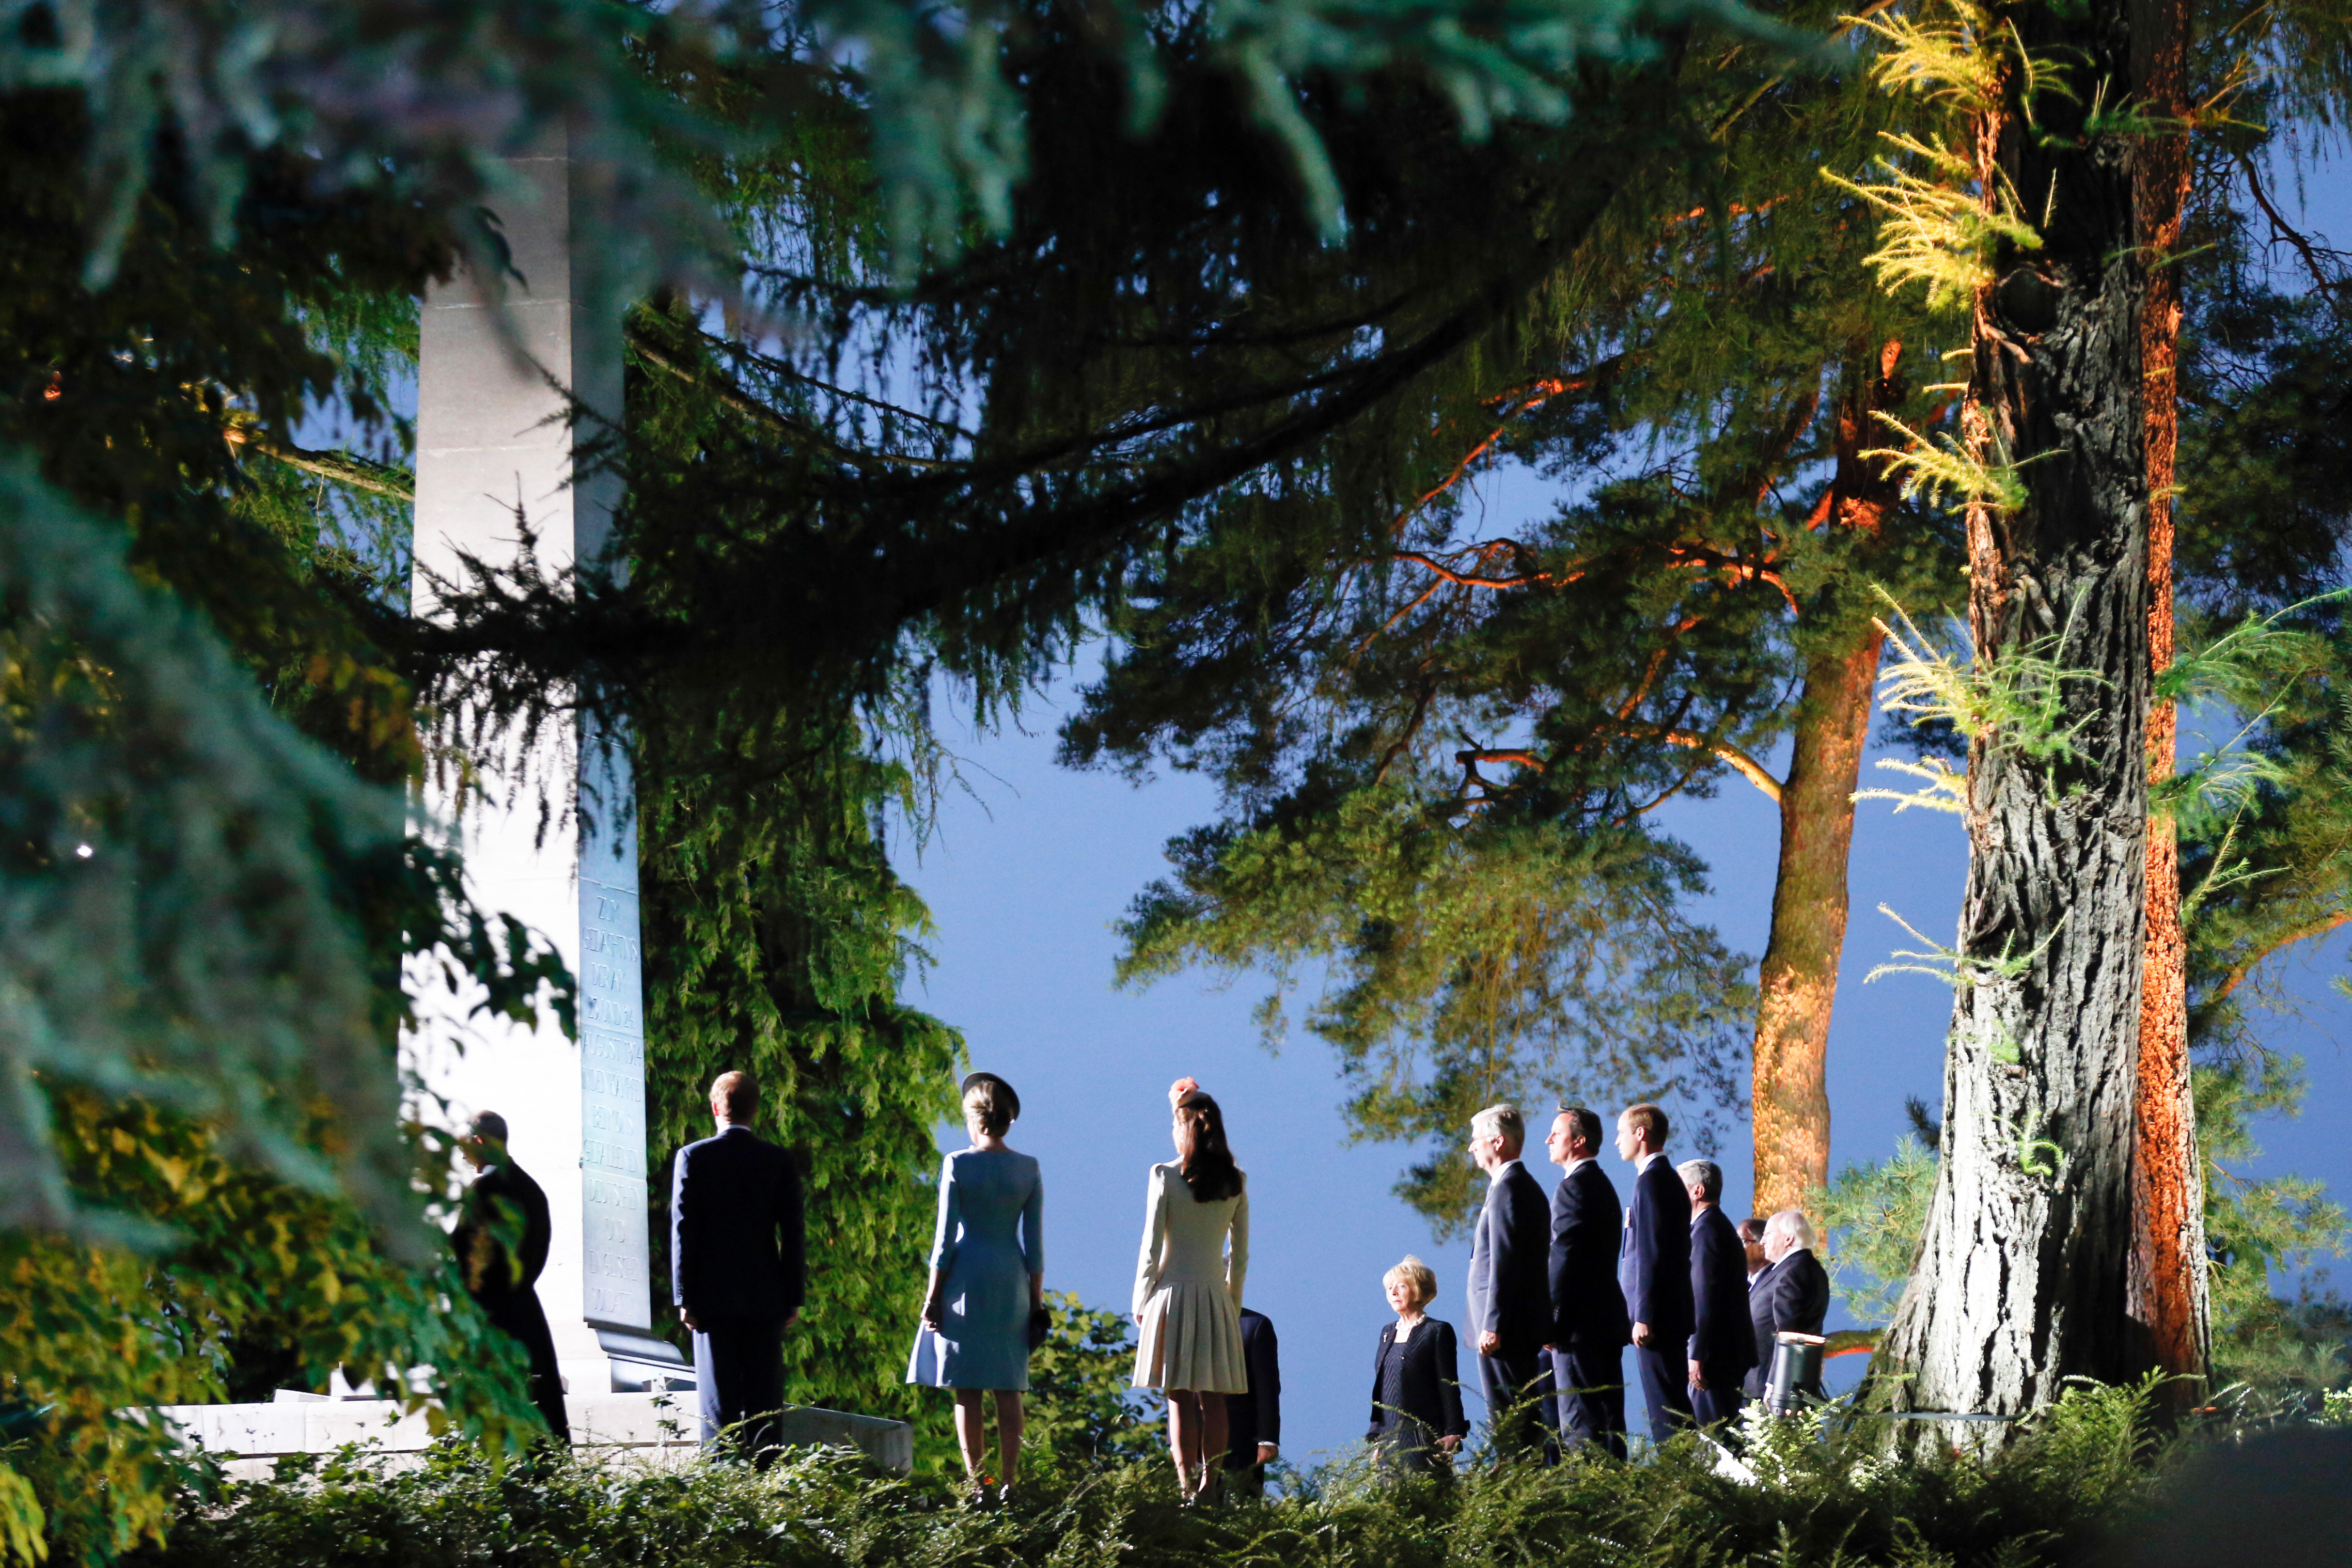 Aug. 4, 2014. Britain's Prince William, Duke of Cambridge and Catherine, Duchess of Cambridge with Prince Harry and Prime Minister David Cameron attend memorial service and reception held at St. Symphorien Cemetery to mark the centenary of the Great War hosted by the King and Queen of Belgium in Mons, Belgium.